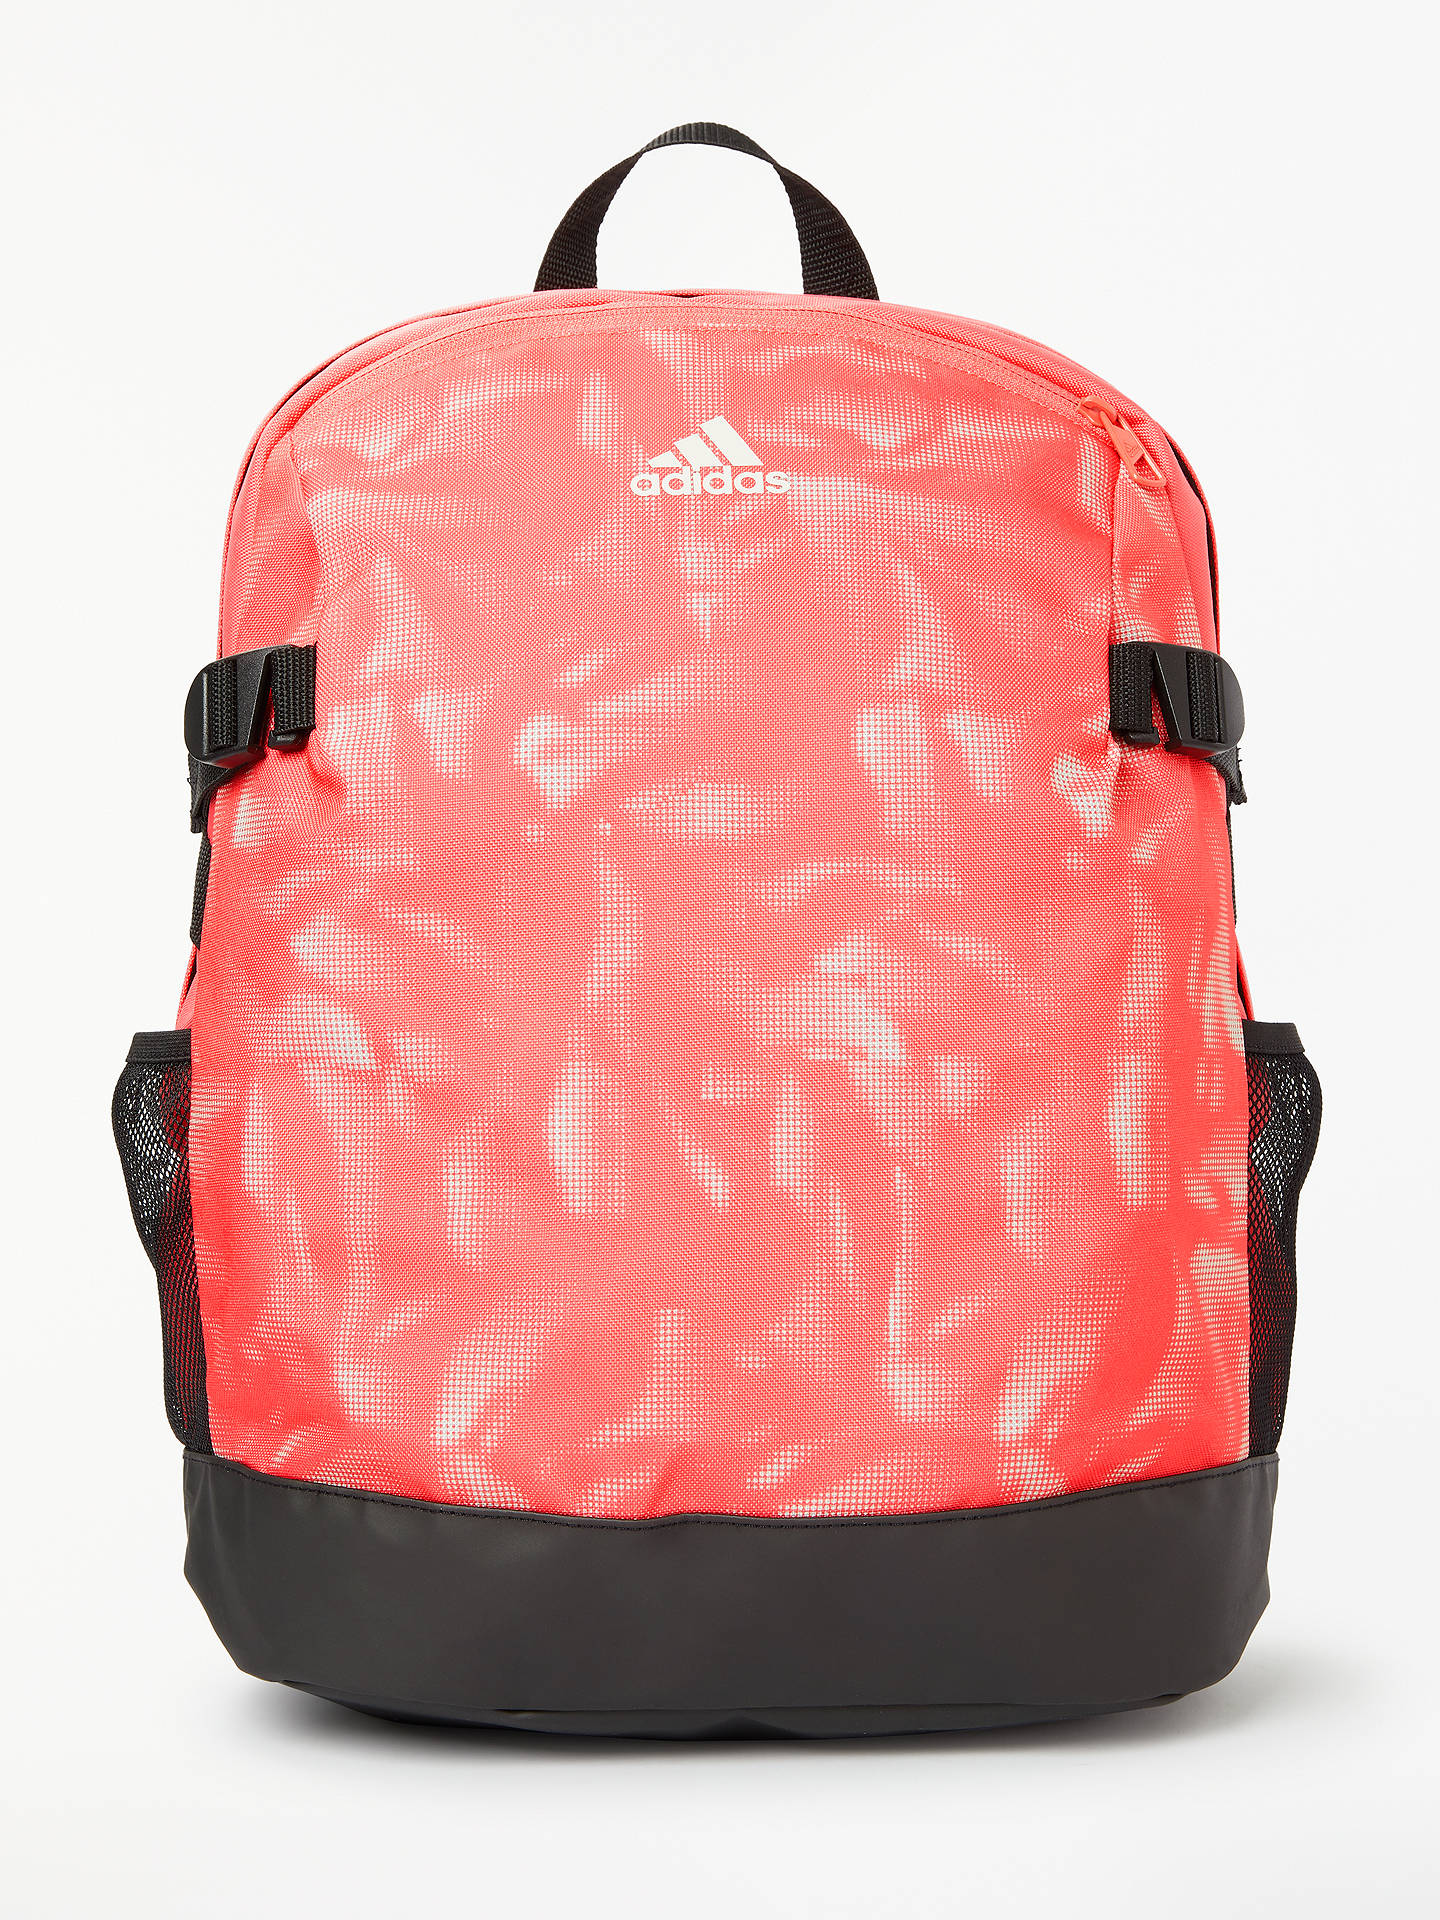 8e0617dd9d67a adidas Power 4 Graphic Backpack